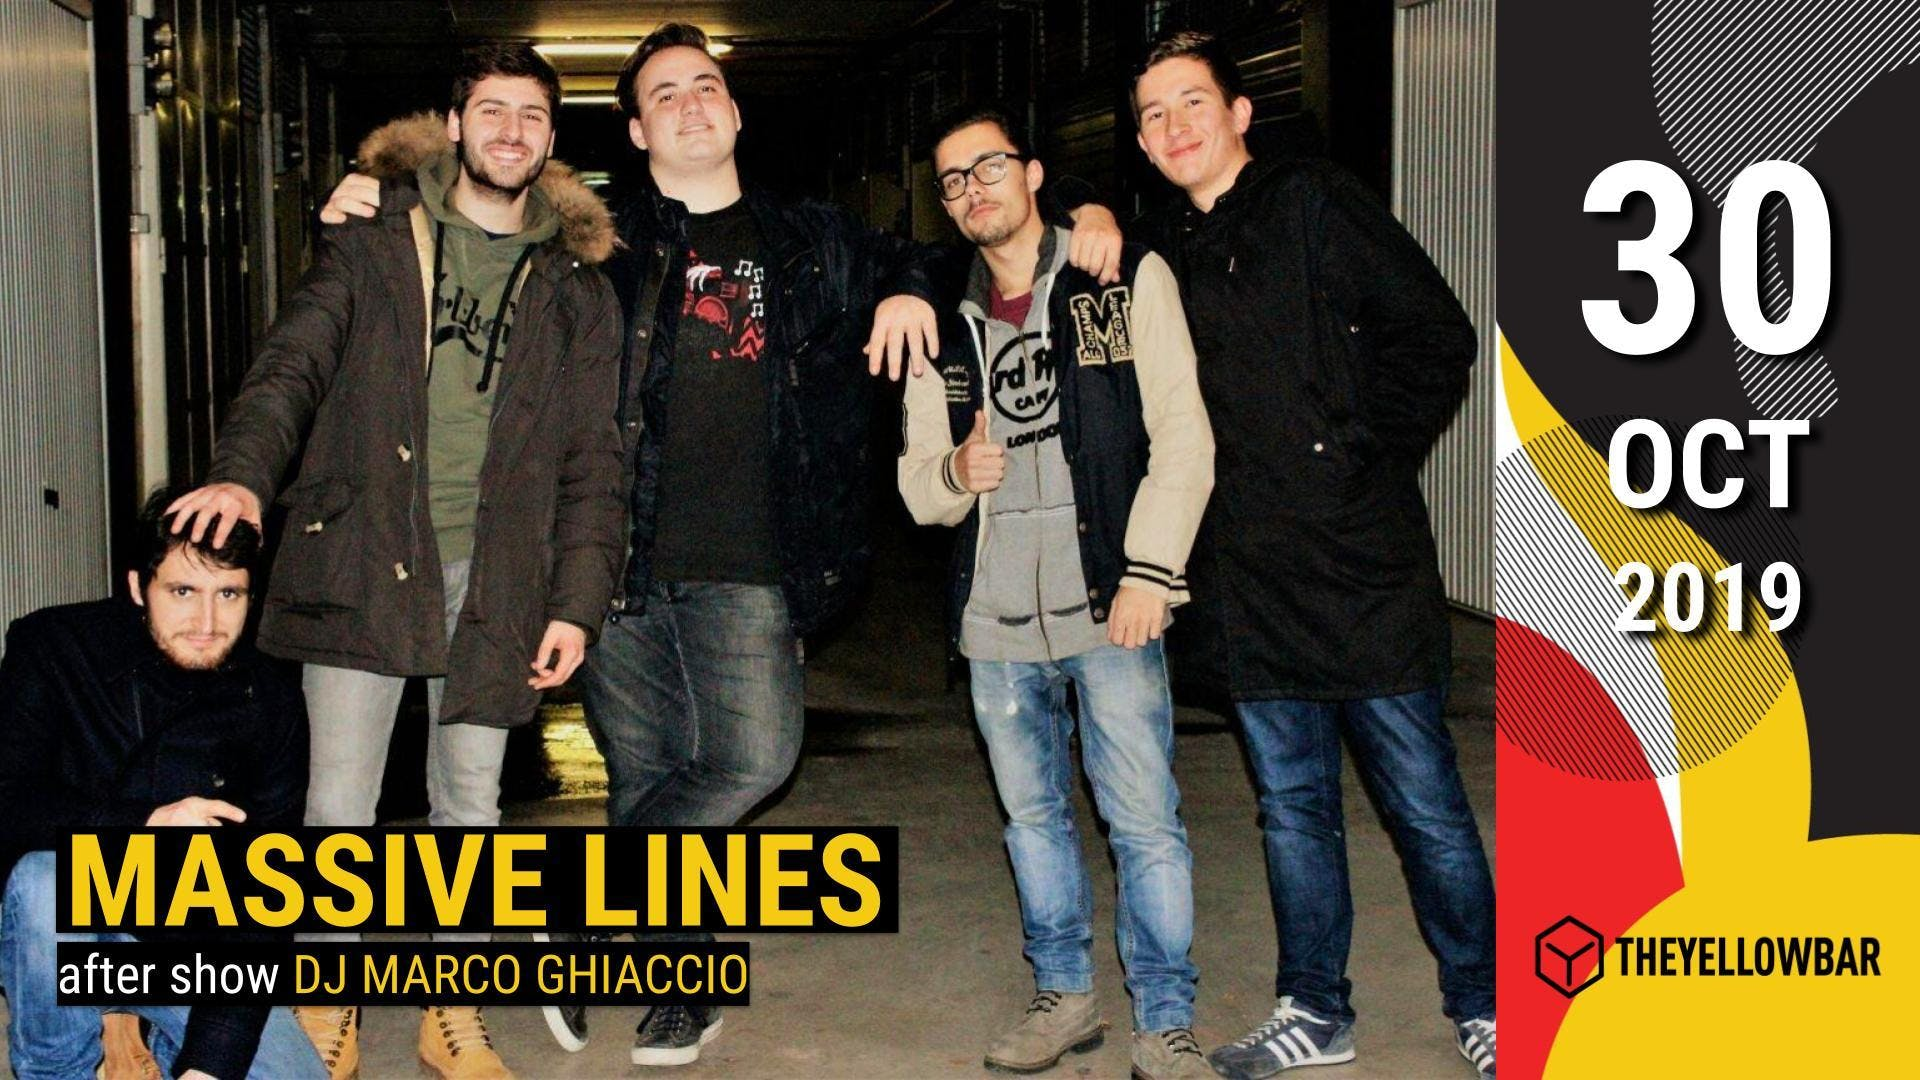 Massive Lines - The Yellow Bar